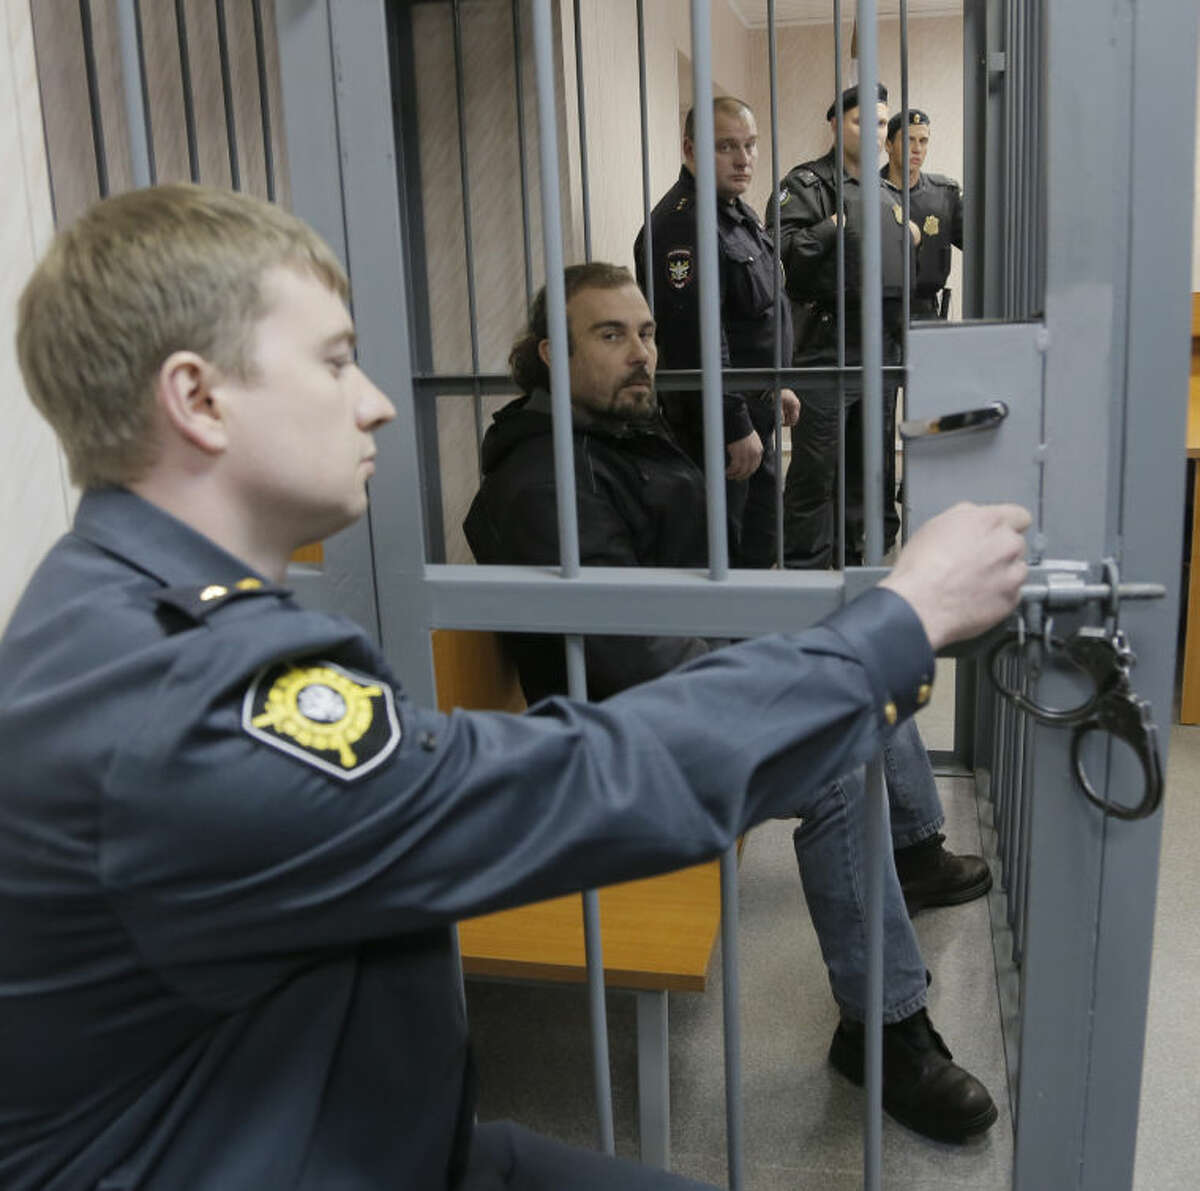 Police officers guard a cage with Greenpeace activist Pisanu Francesco Pierre, center, of France in a court room in Murmansk, Russia, Thursday, Sept. 26, 2013. A Russian court on Thursday jailed Greenpeace activist Pisanu Francesco Pierre who was part of the 30-member Greenpeace team protesting near an oil platform last week. The Coast Guard disrupted an attempt by Greenpeace activists on Sept. 18 to scale the Russian Arctic platform. Russian authorities seized Greenpeace's ship the next day and towed it with the 30 activists aboard to Murmansk. The activists are being investigated for piracy. (AP Photo/Efrem Lukatsky)